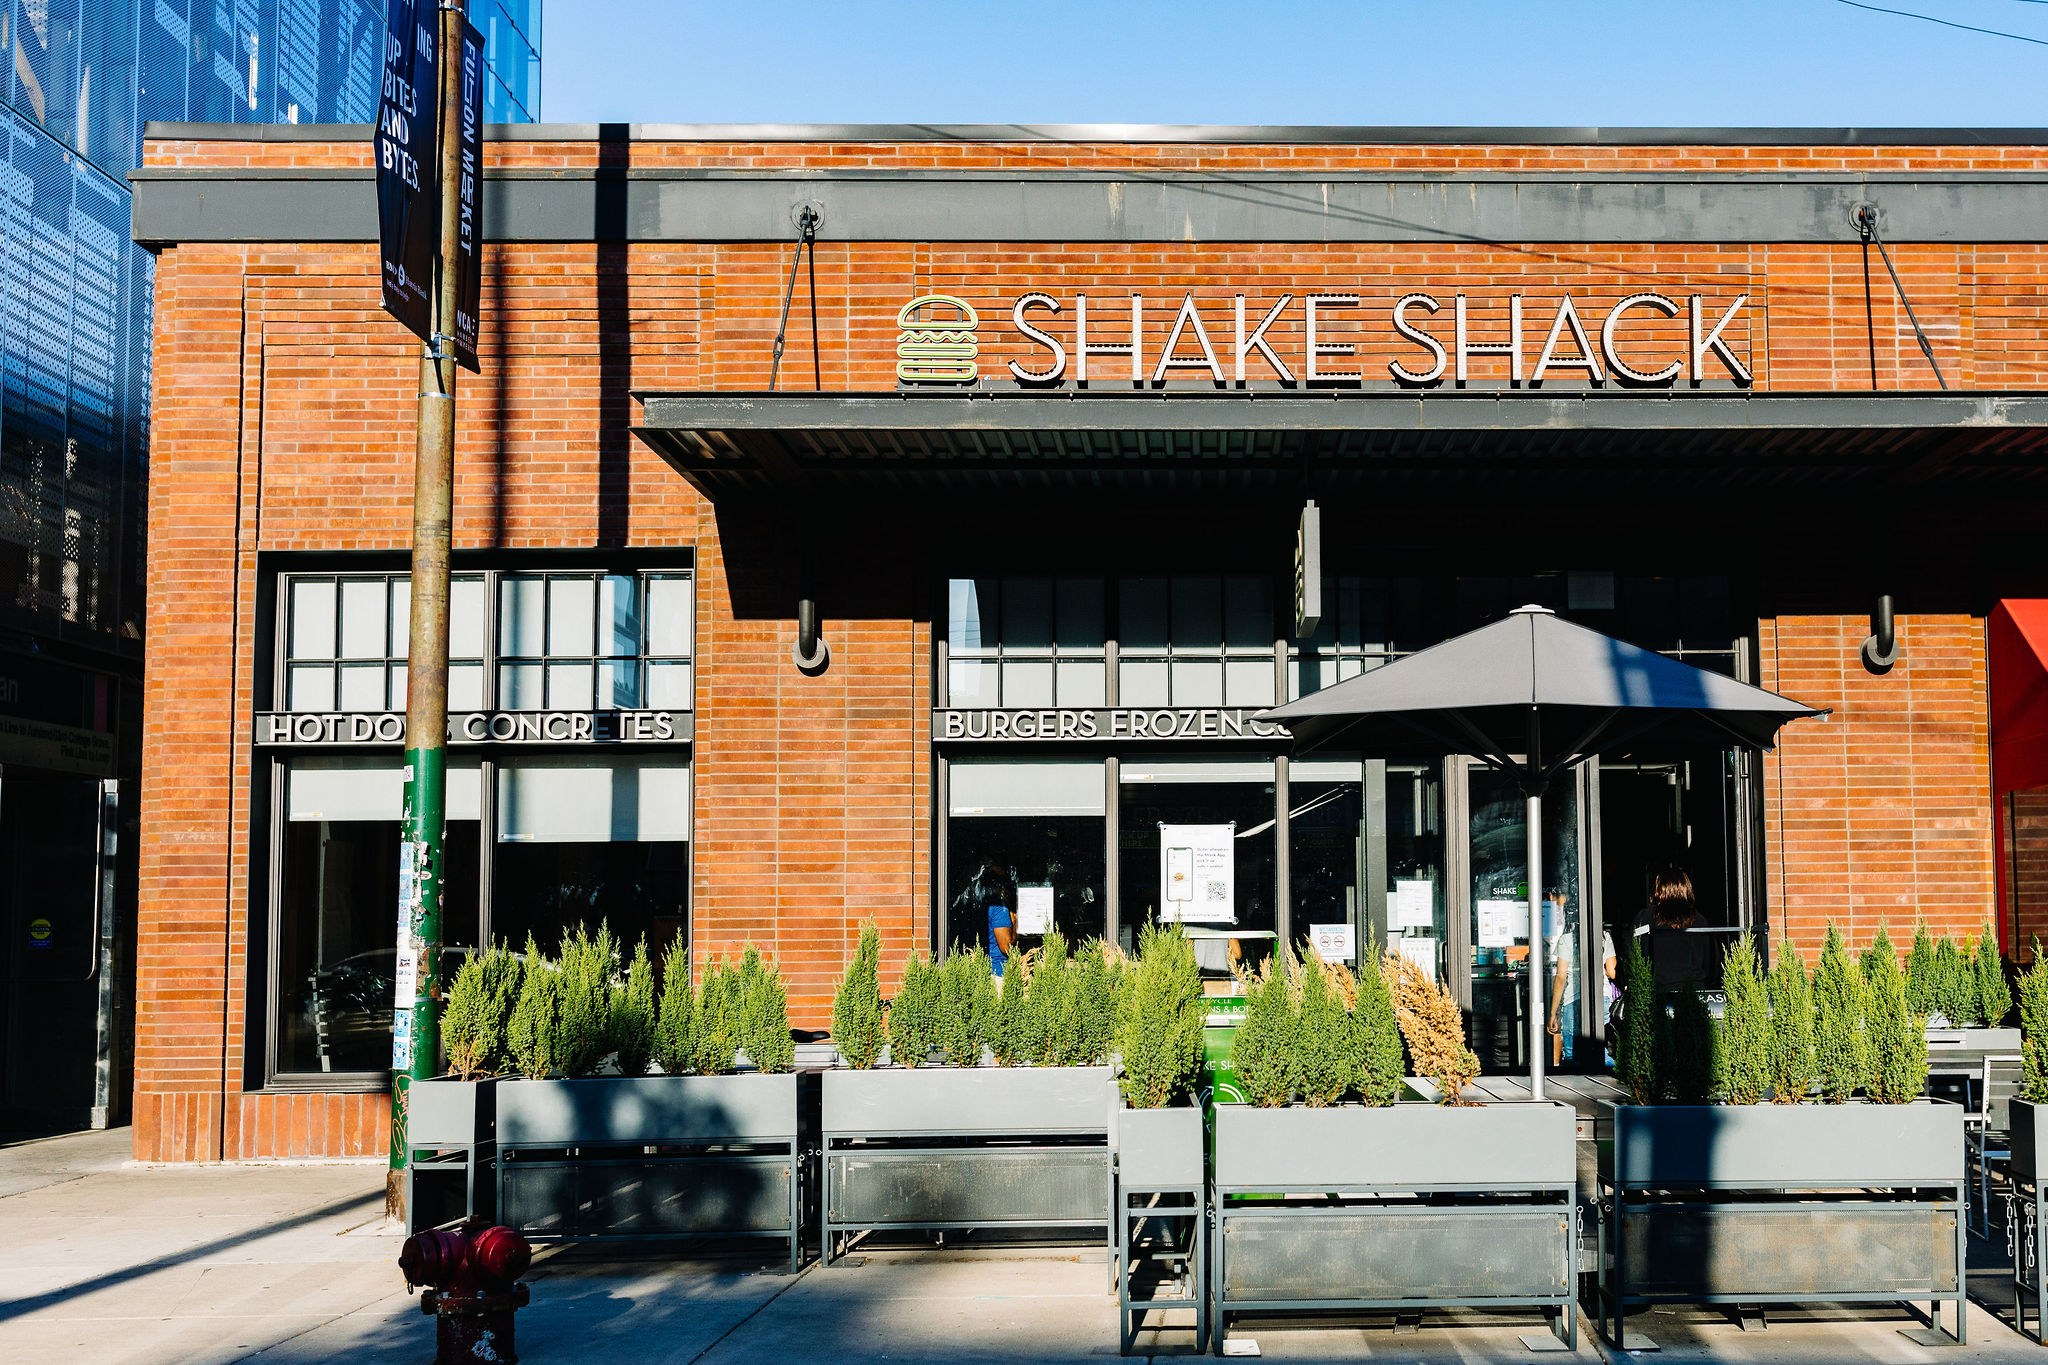 Emme Chicago West Loop Shake Shack